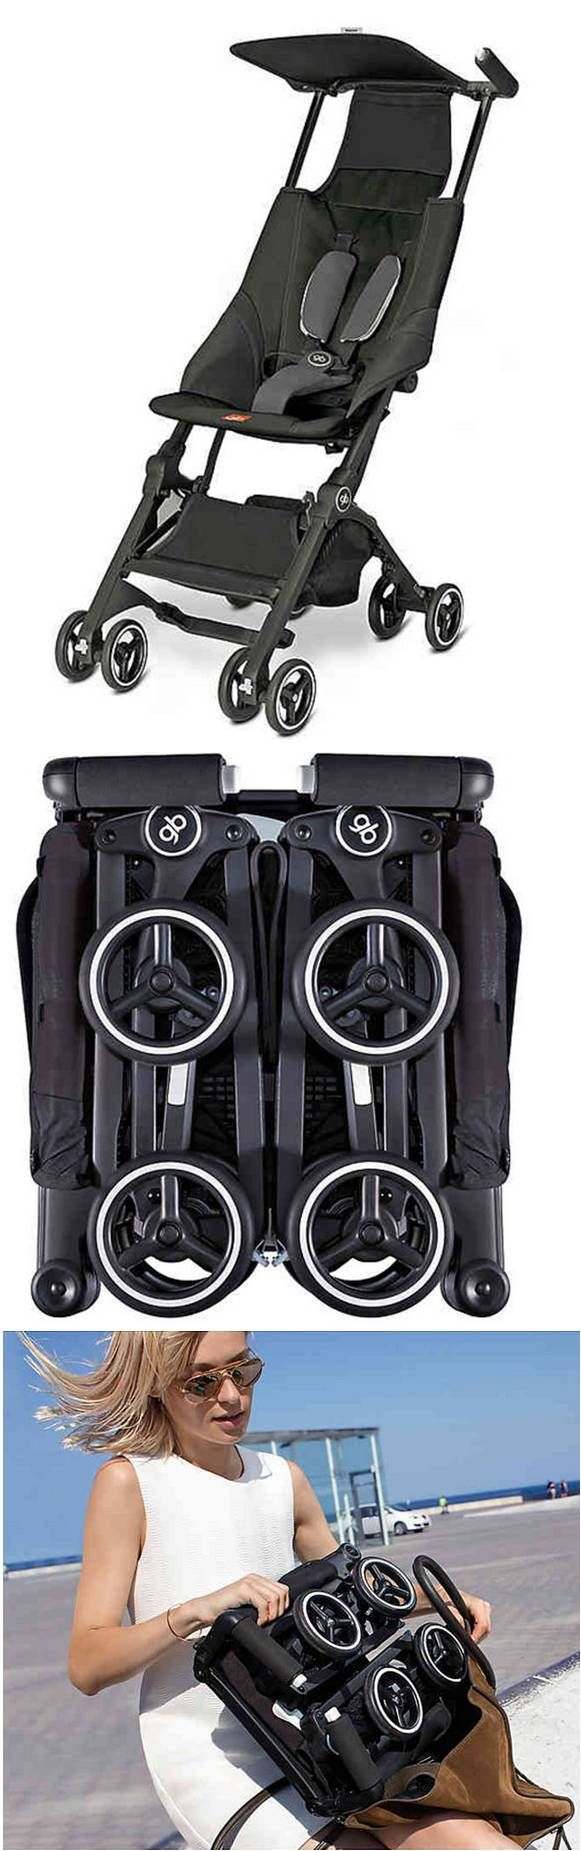 GB Pockit Stroller in Monument Black Gb pockit stroller